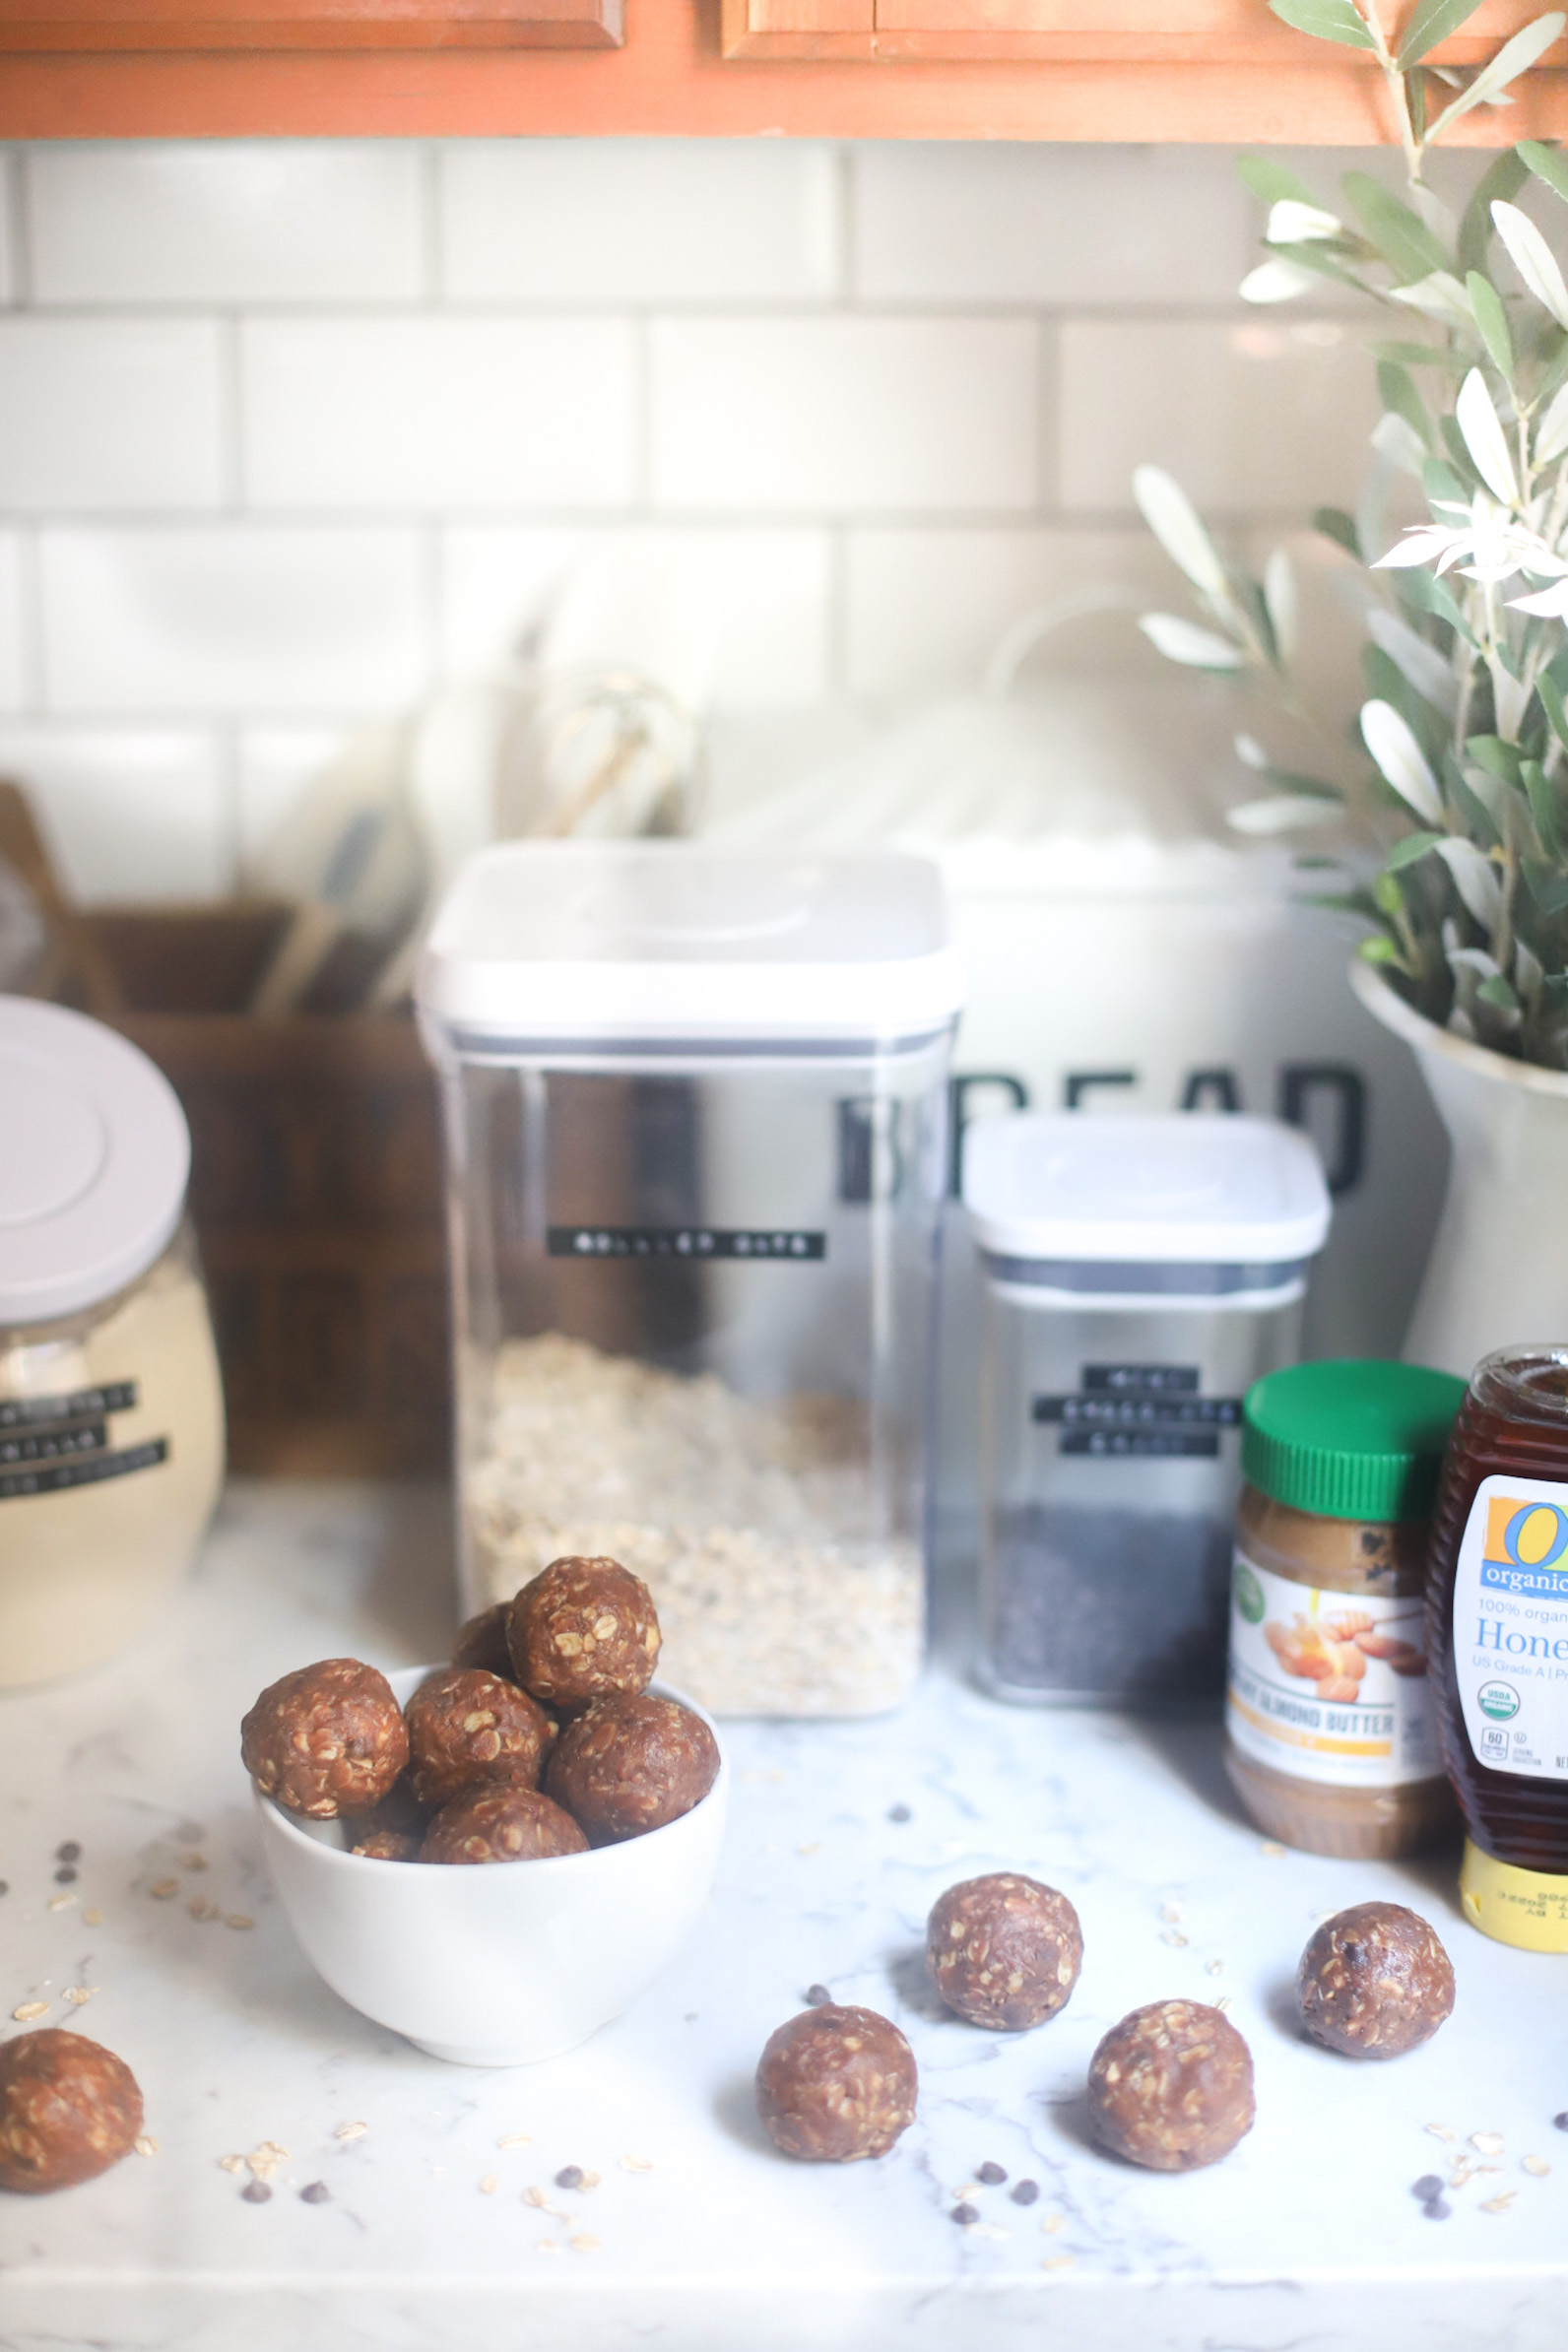 Need a healthier snack to satisfy your sweet tooth? These easy no-bake chocolate chip cookie energy bites are full of healthier ingredients like gluten-free oats, almond butter, and plant-based protein powder; and bonus: they taste just like chocolate chip cookies! | @glitterinclexi | GLITTERINC.COM